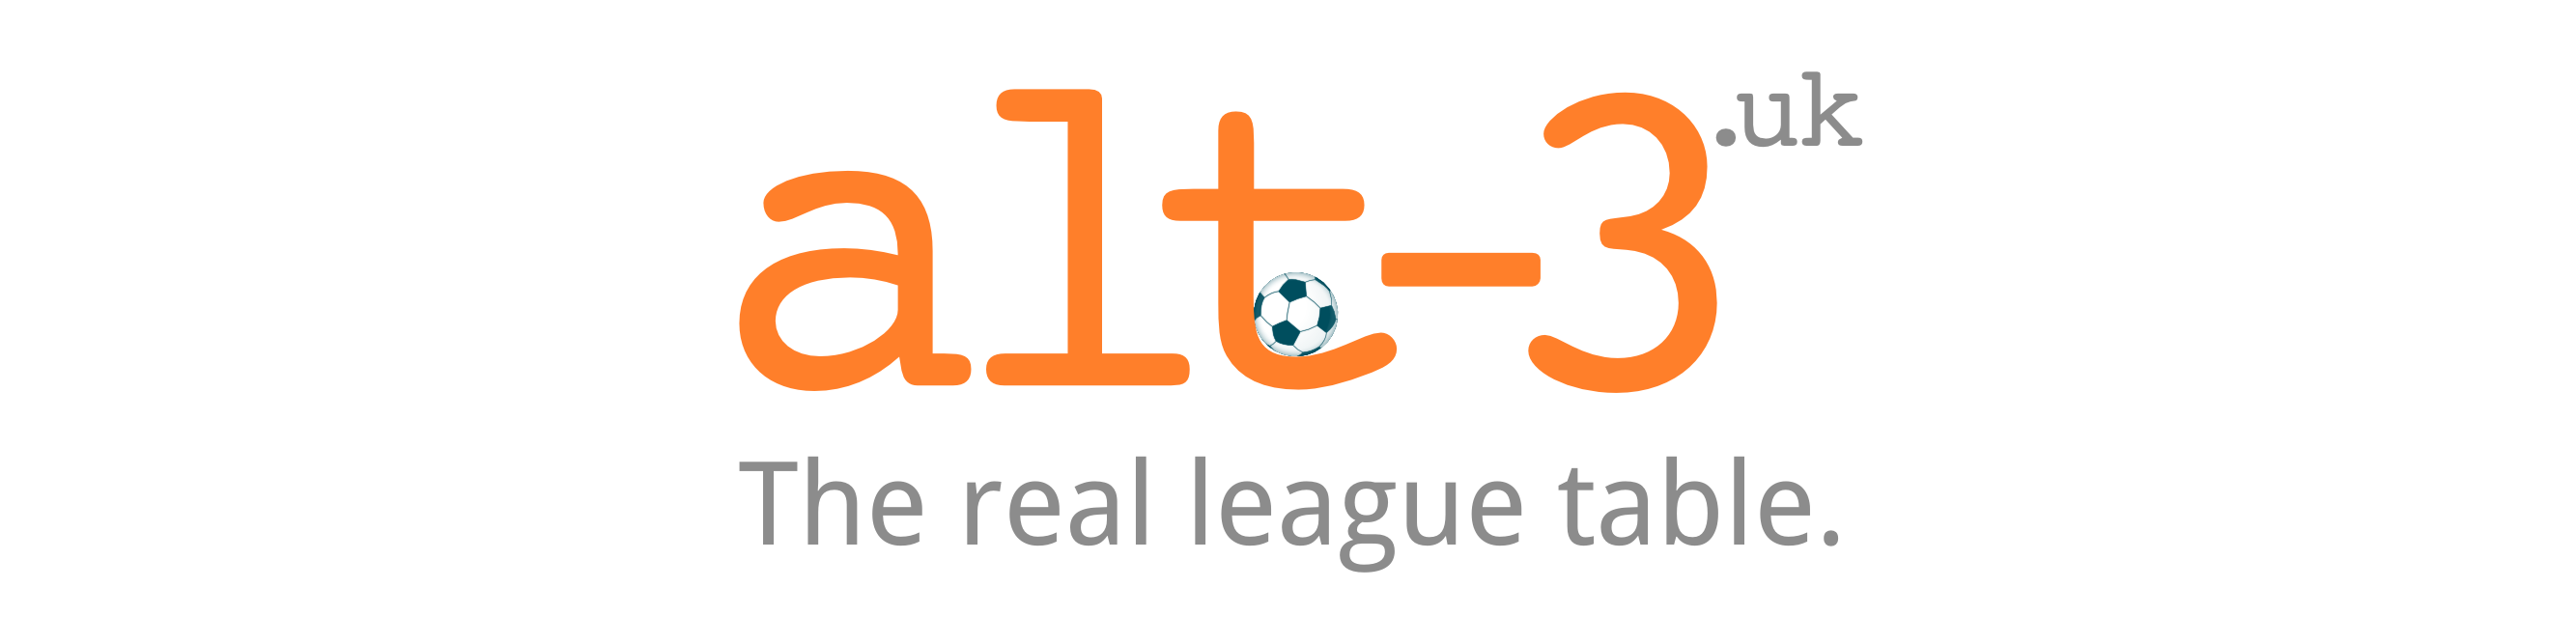 New format for alt-3 league tables